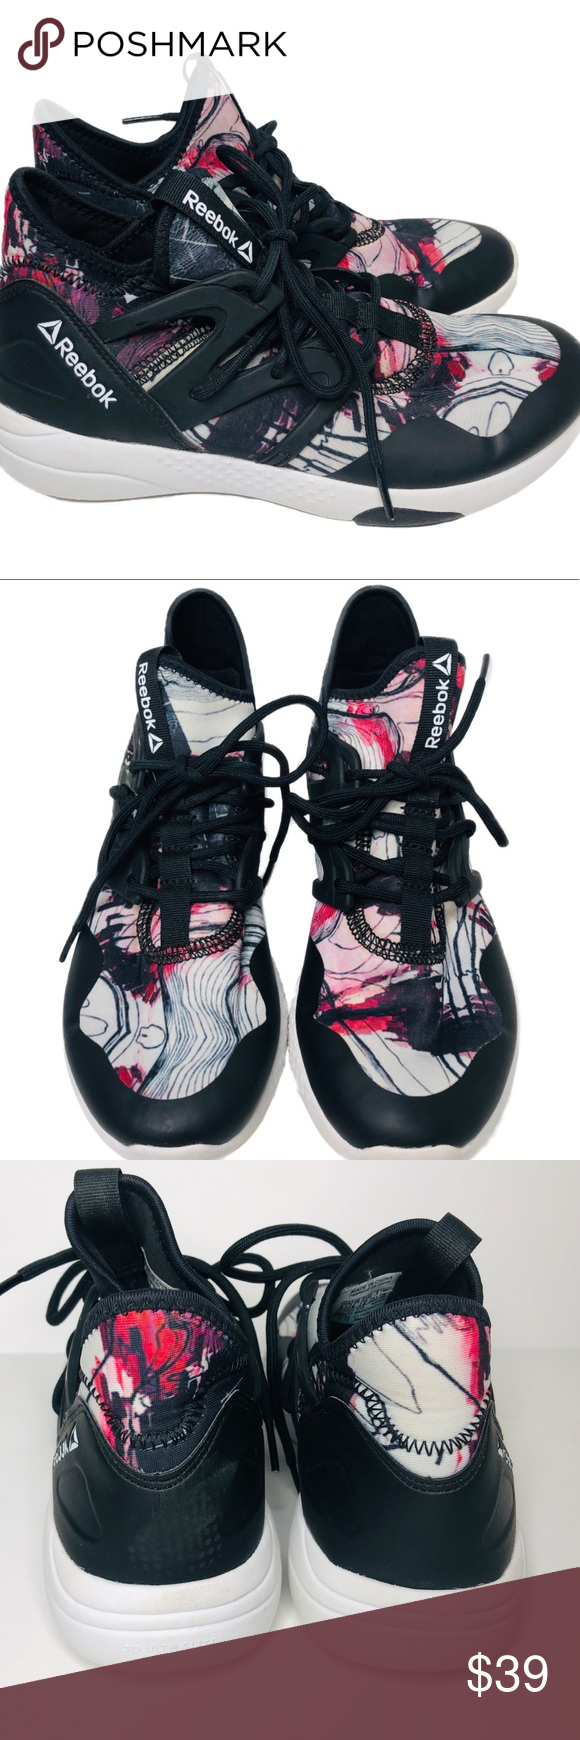 Women's Reebok Sneakers Size 6.5 training (With images